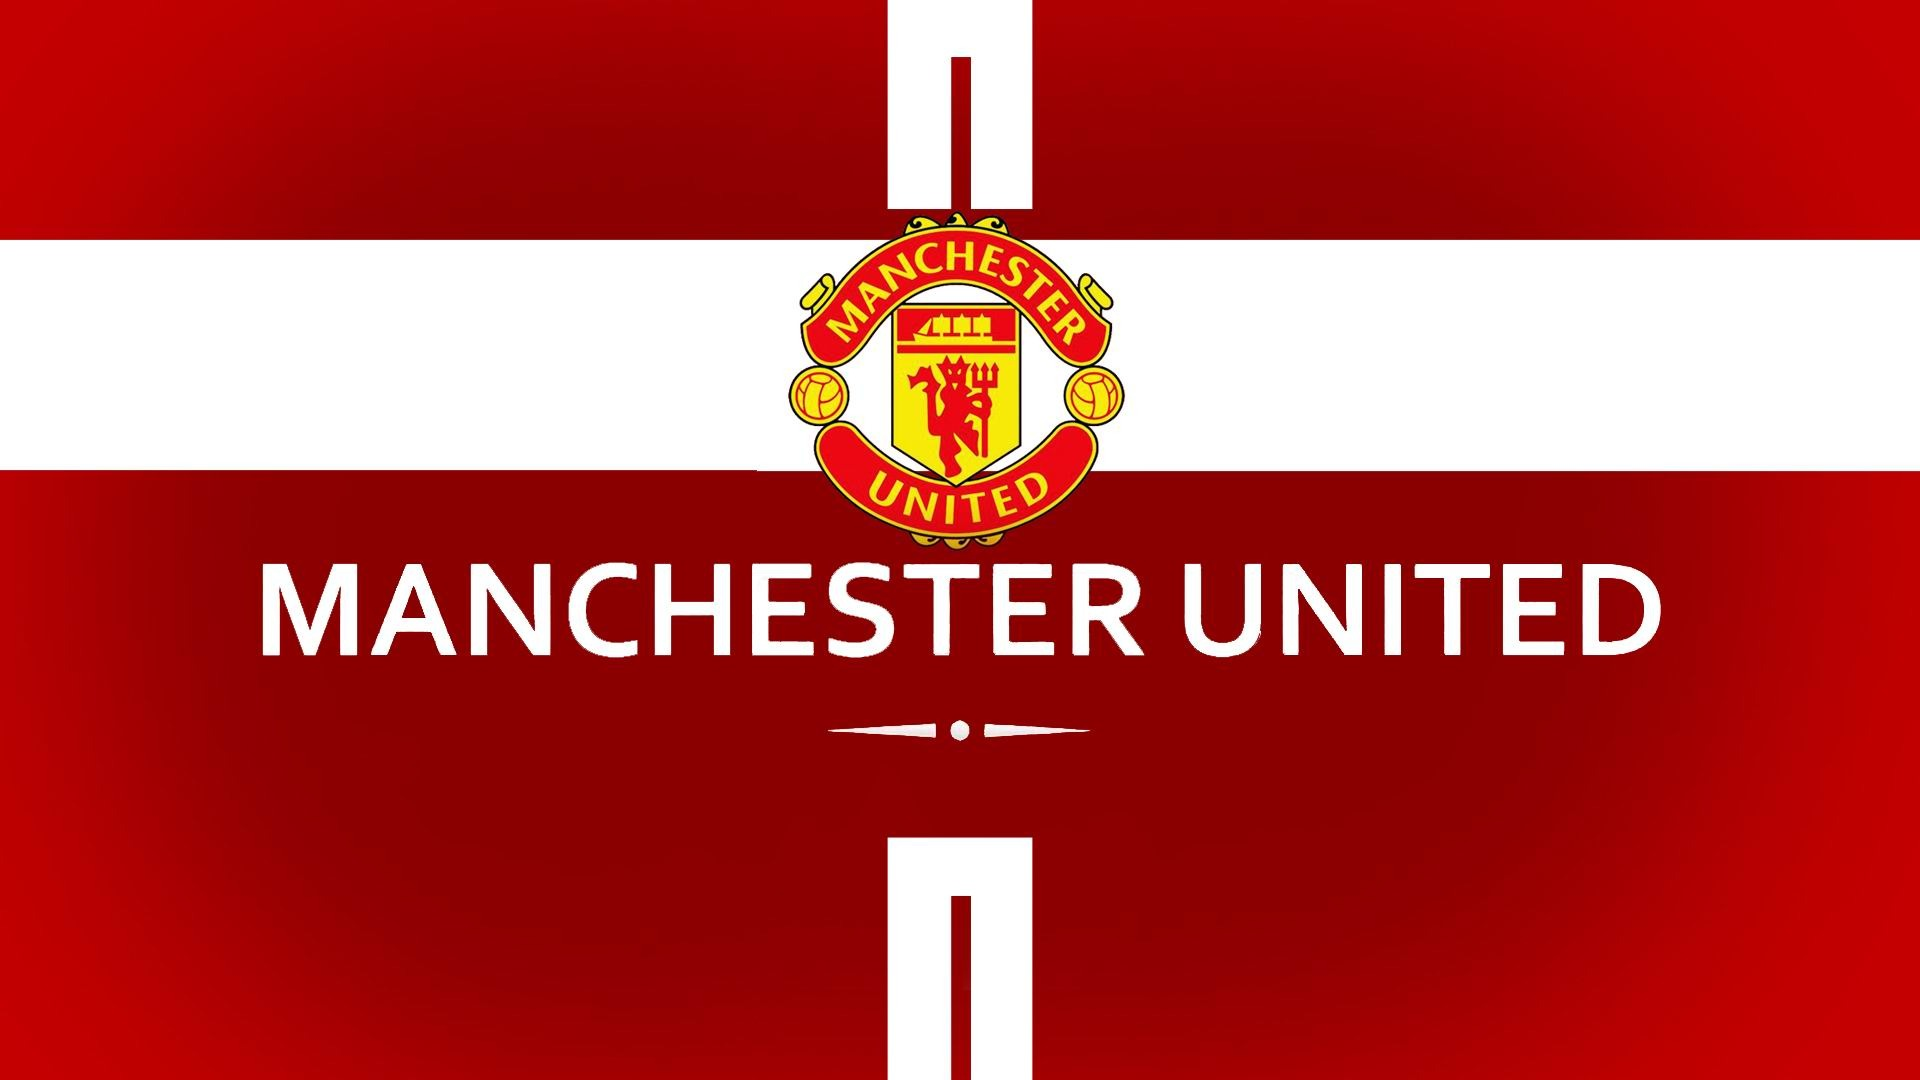 Simple Wallpaper Name English - Manchester-United-Wallpaper-15  Image_366112.jpg